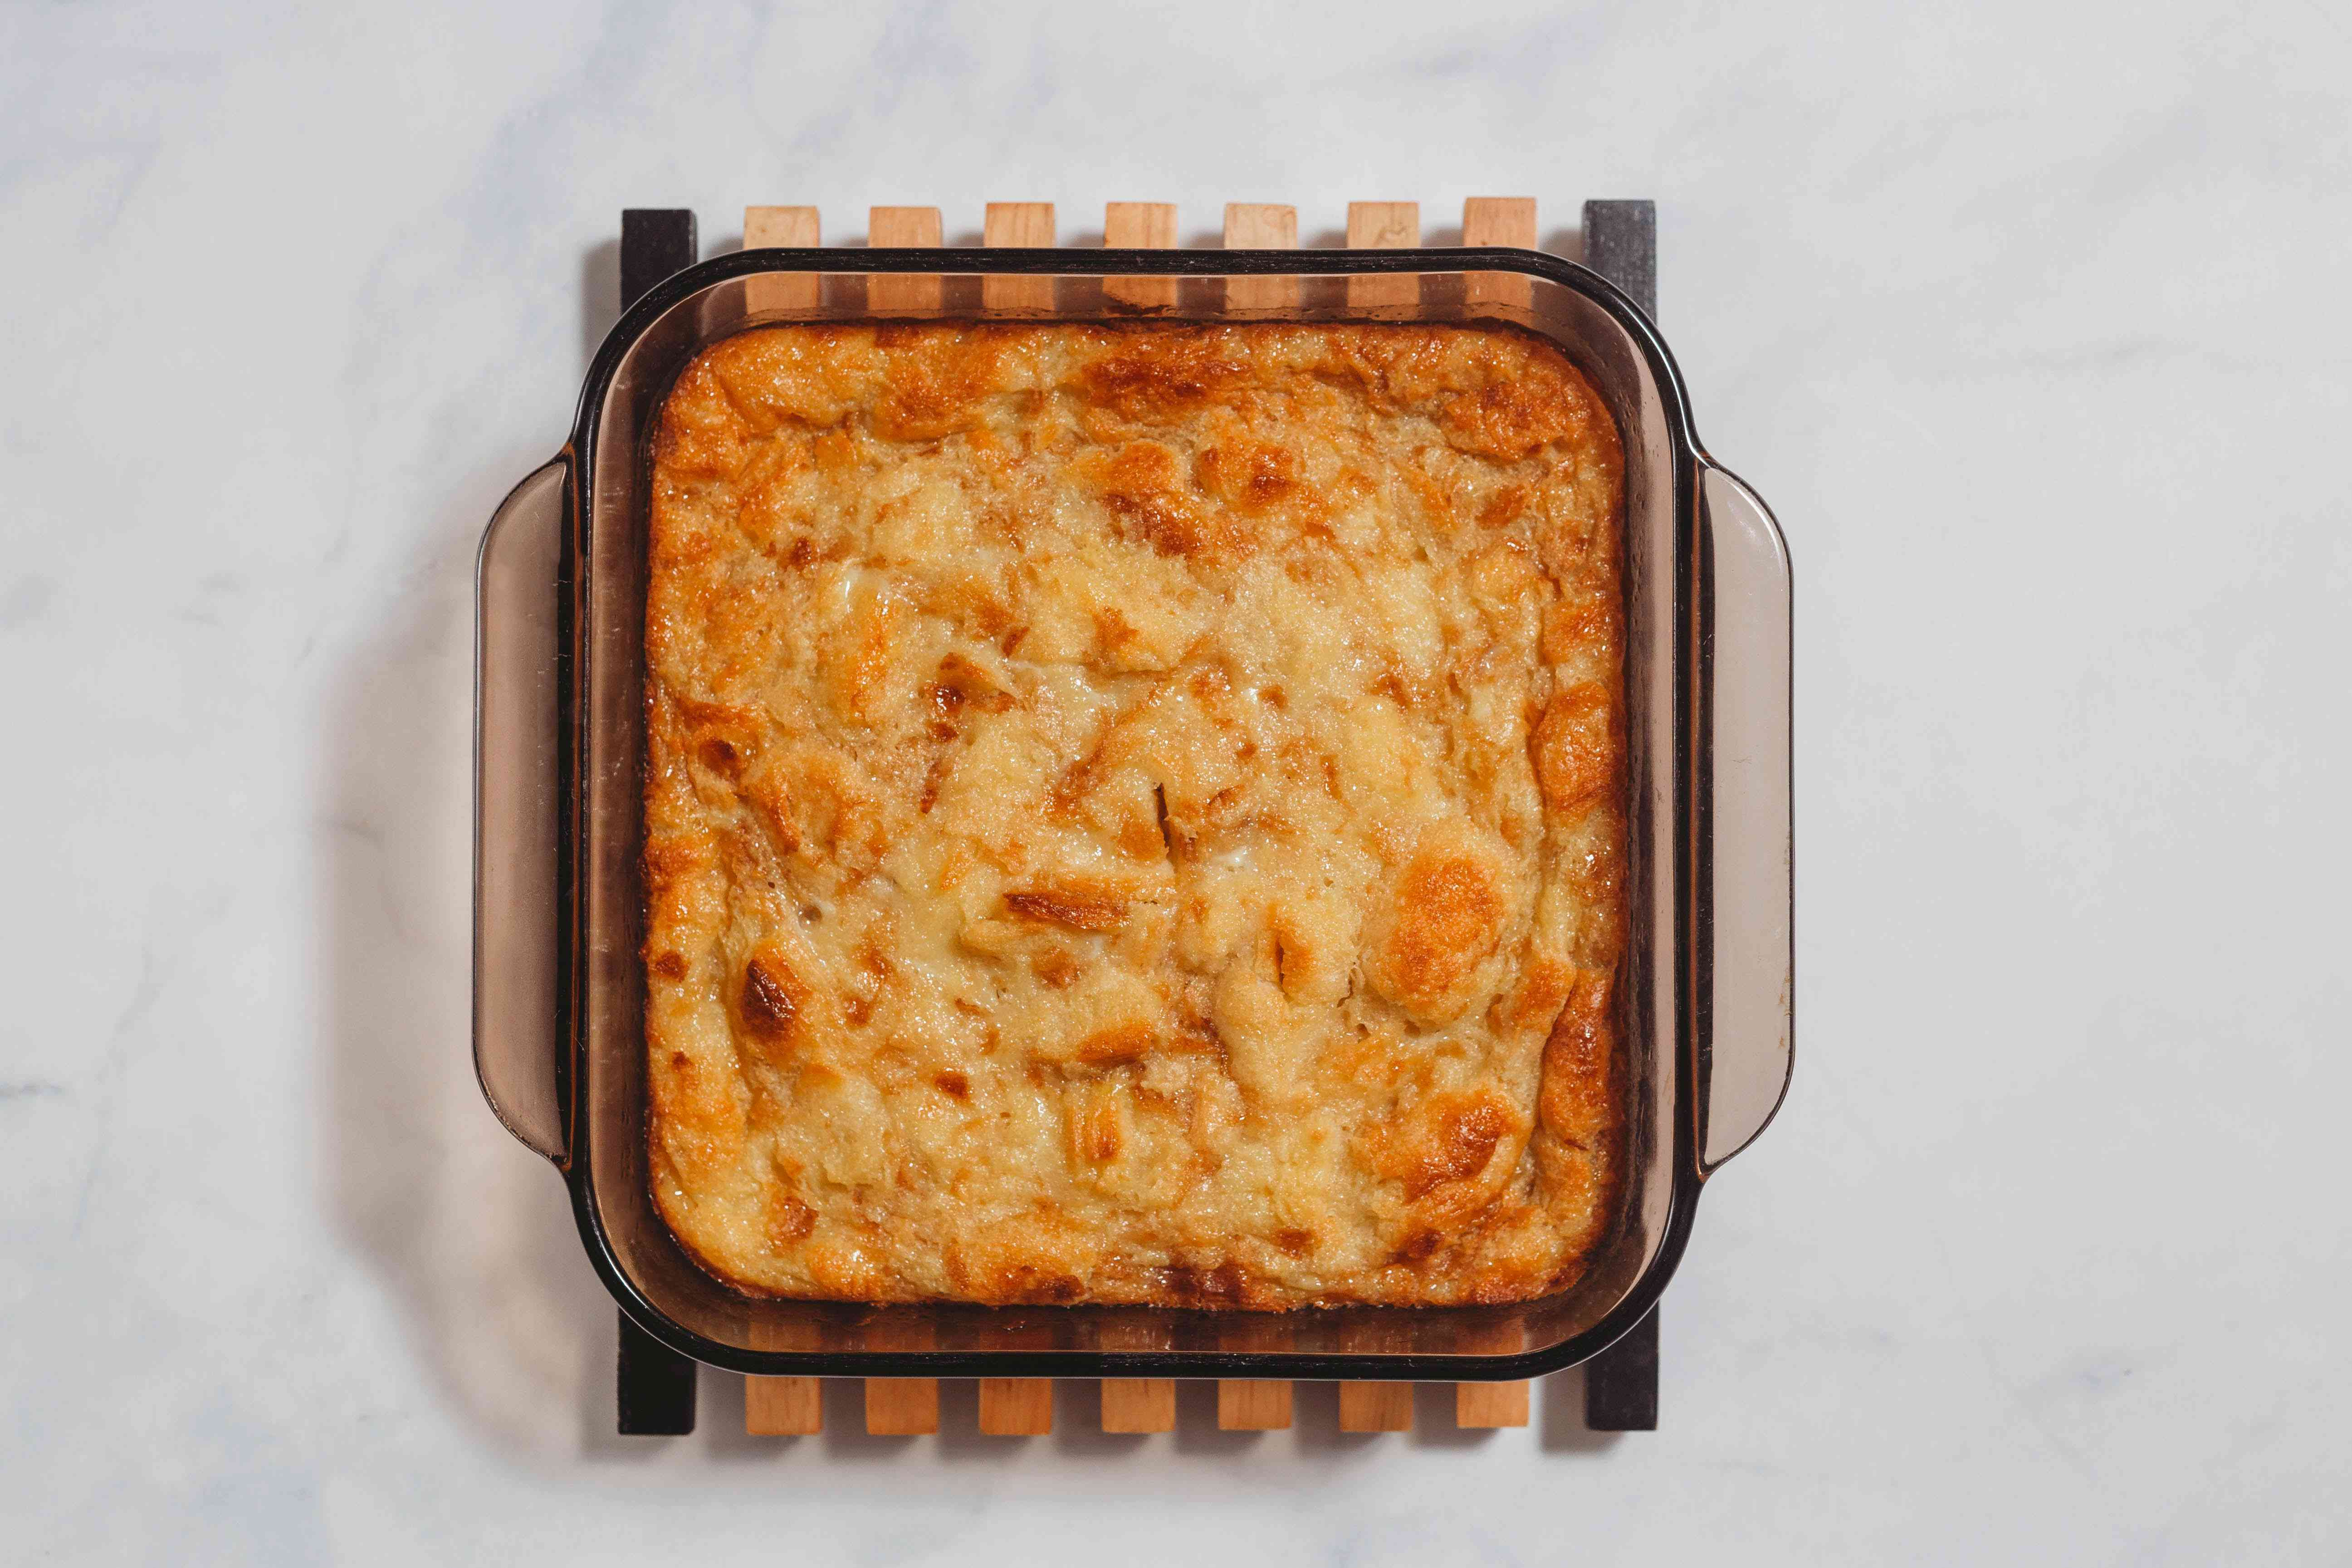 Baked Old-Fashioned Biscuit Pudding in a glass baking pan